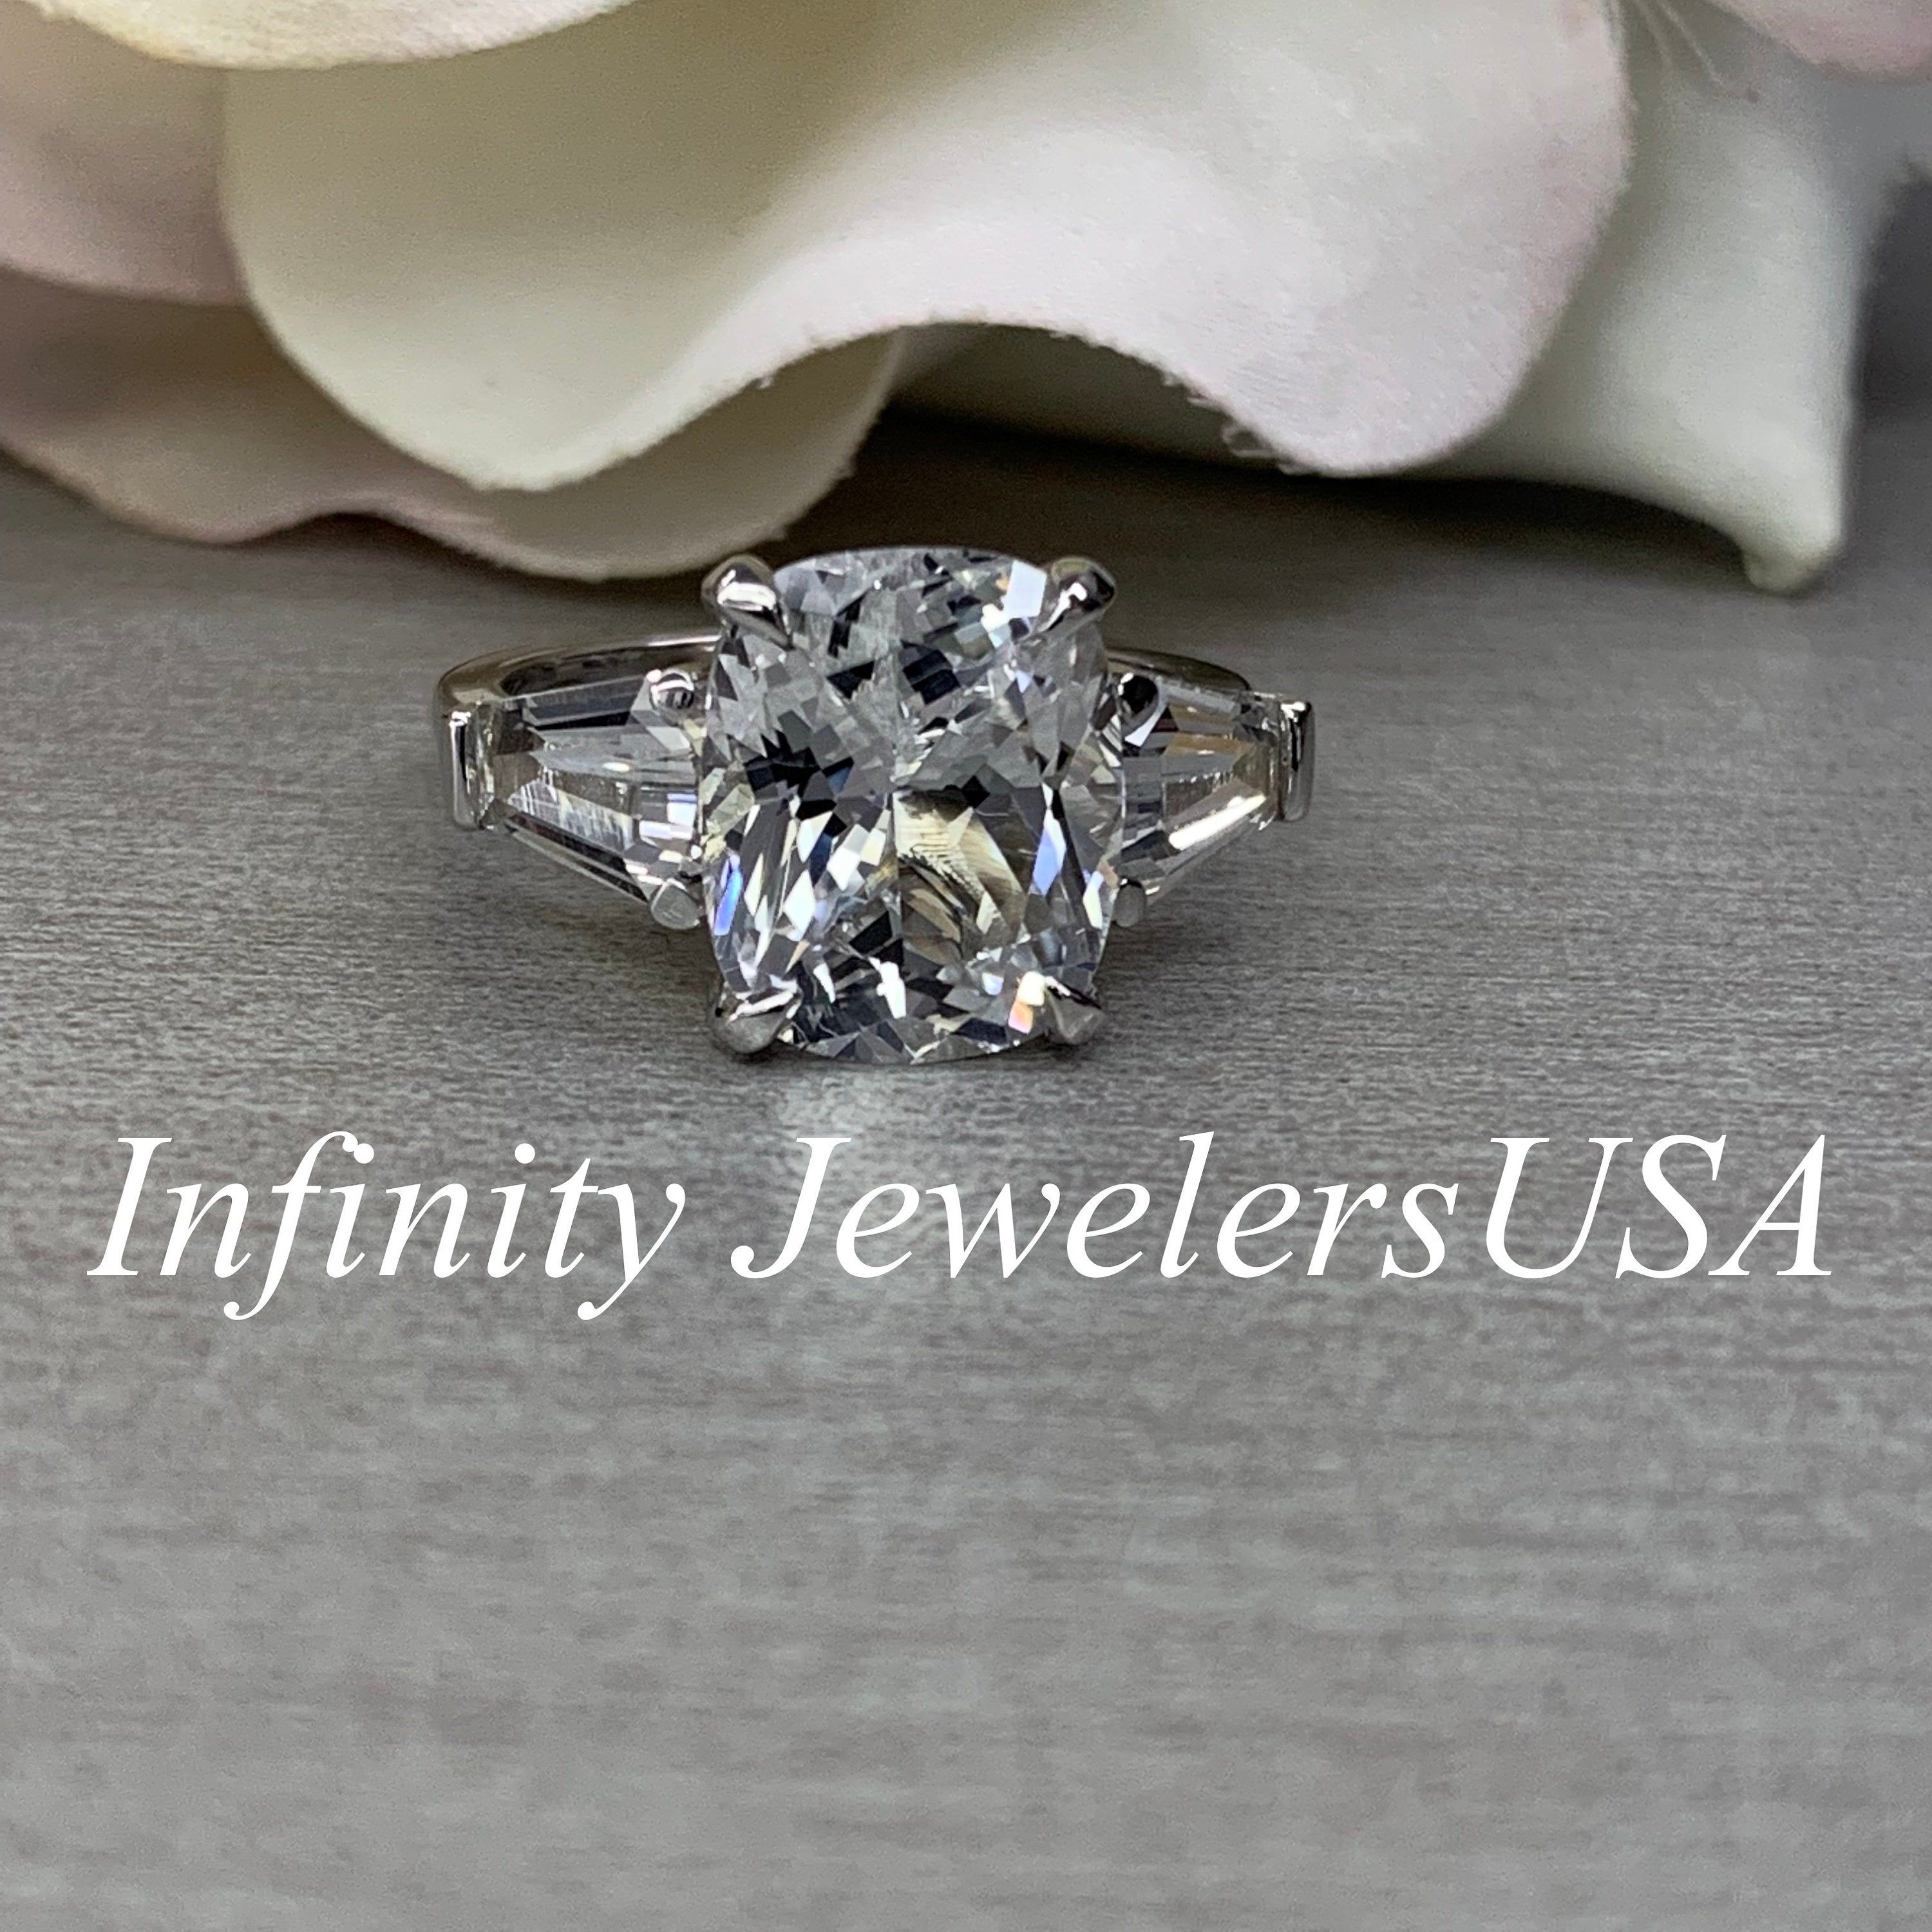 Cushion Cut Certfied Moissanite Engagement Ring Cushion Shape Moissanite Engagaement Ring With Trapizoid Sides Forever One Moissanite Ring #cushionengagementring